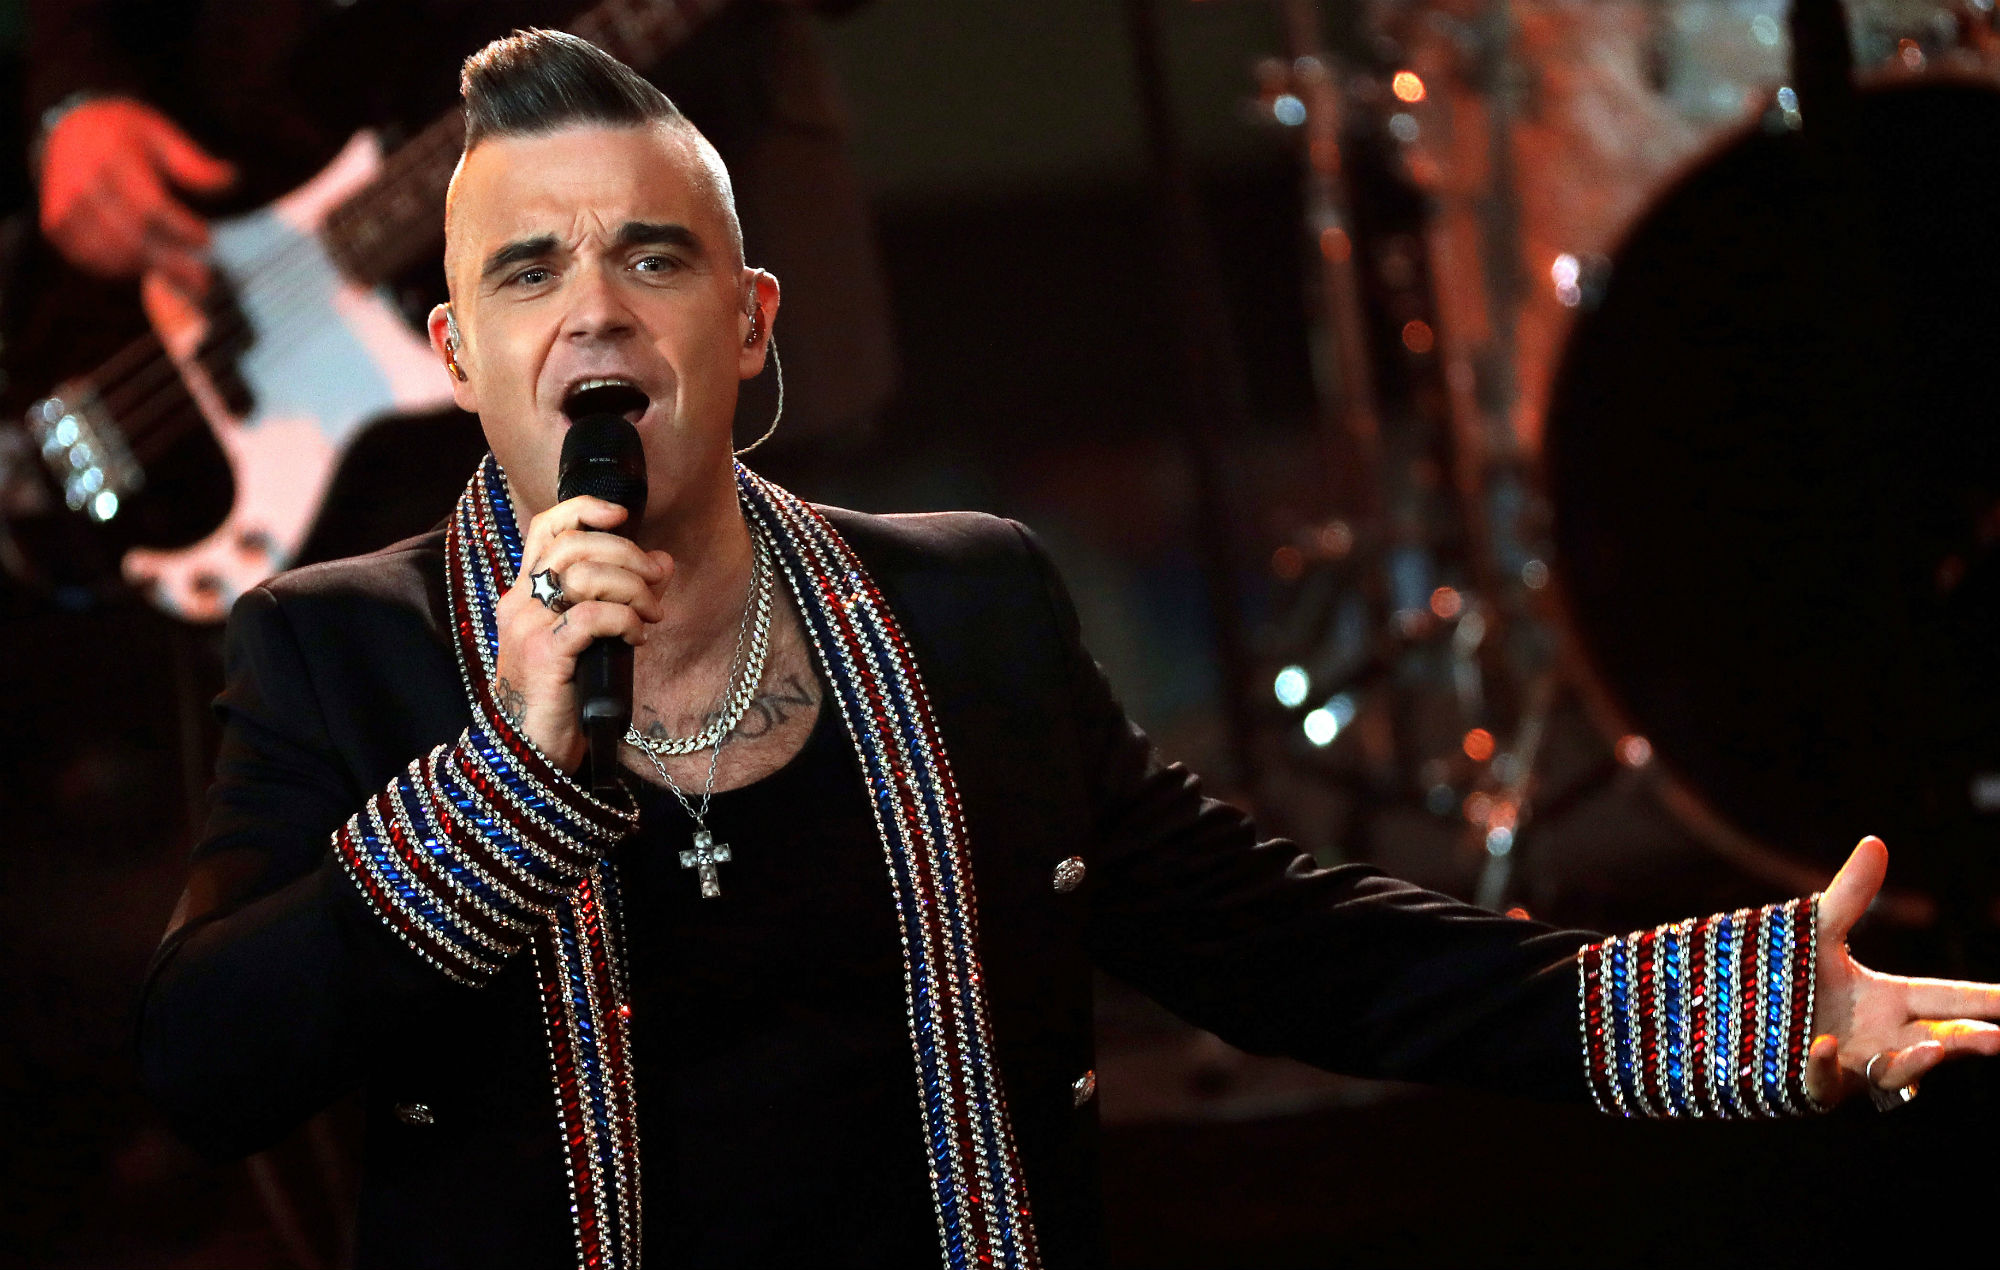 Robbie Williams biopic from 'The Greatest Showman' director is in the works